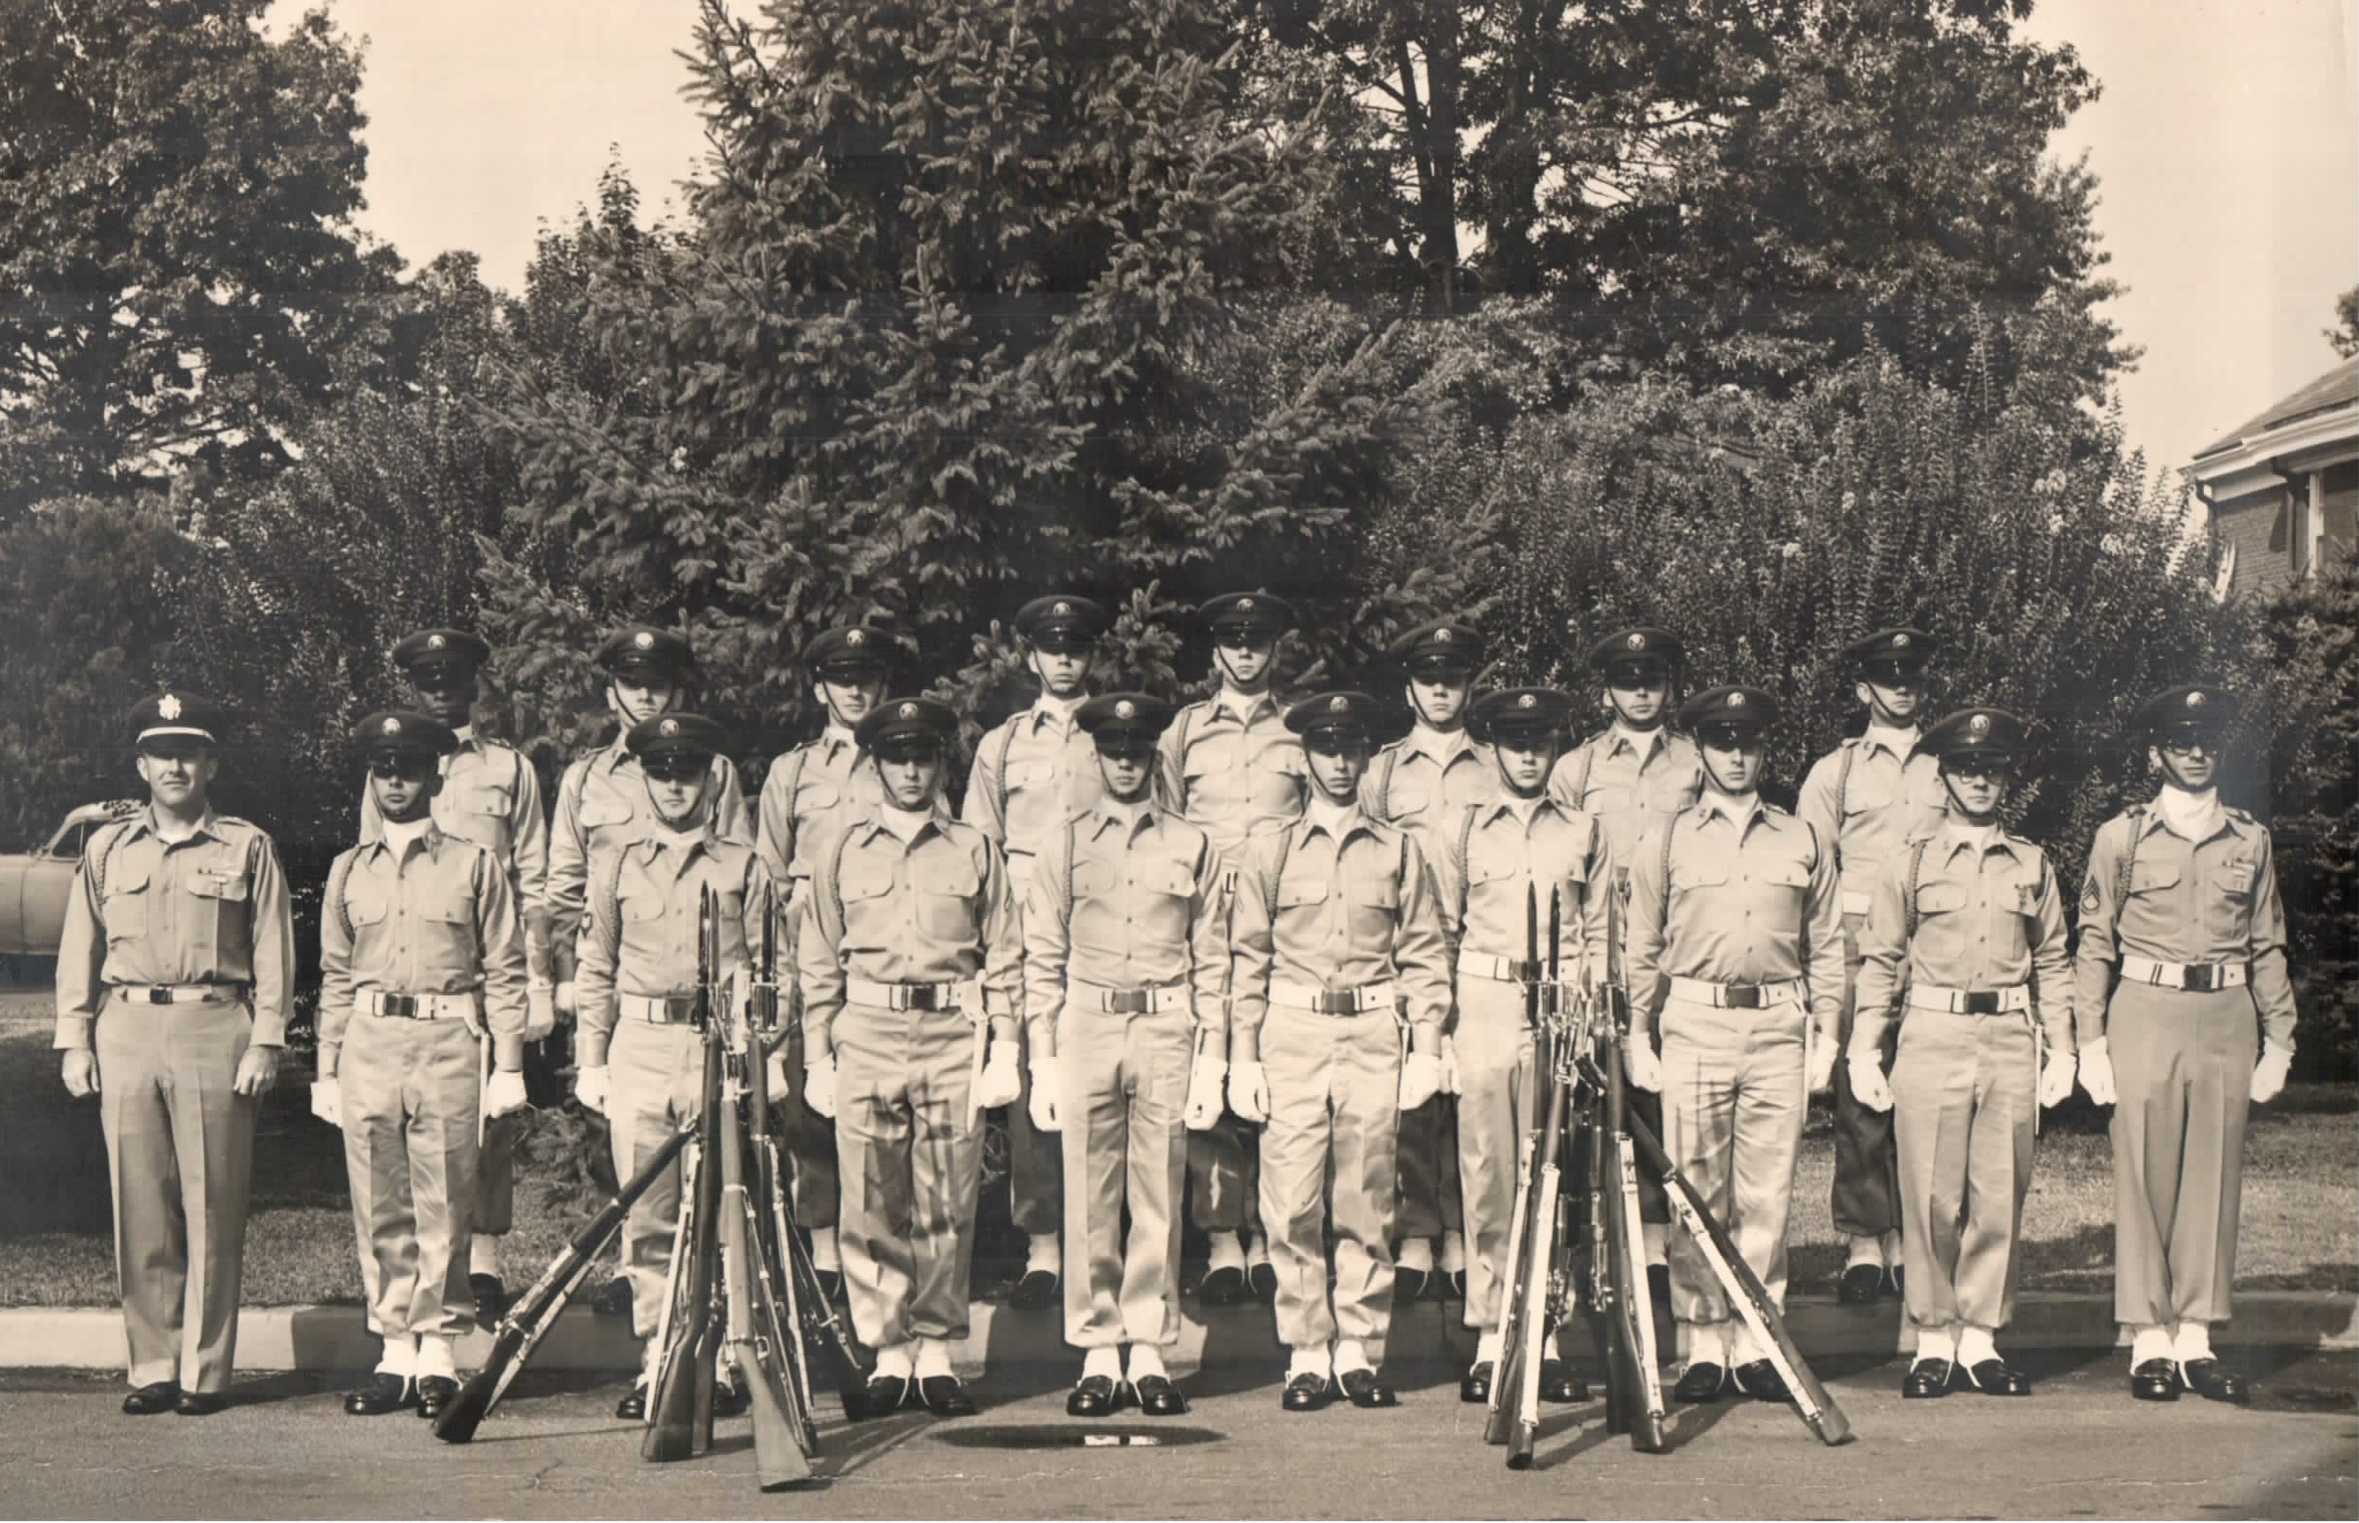 My father, Walter Blank, is in the front row, second from the left. 3rd US Infantry Regiment.